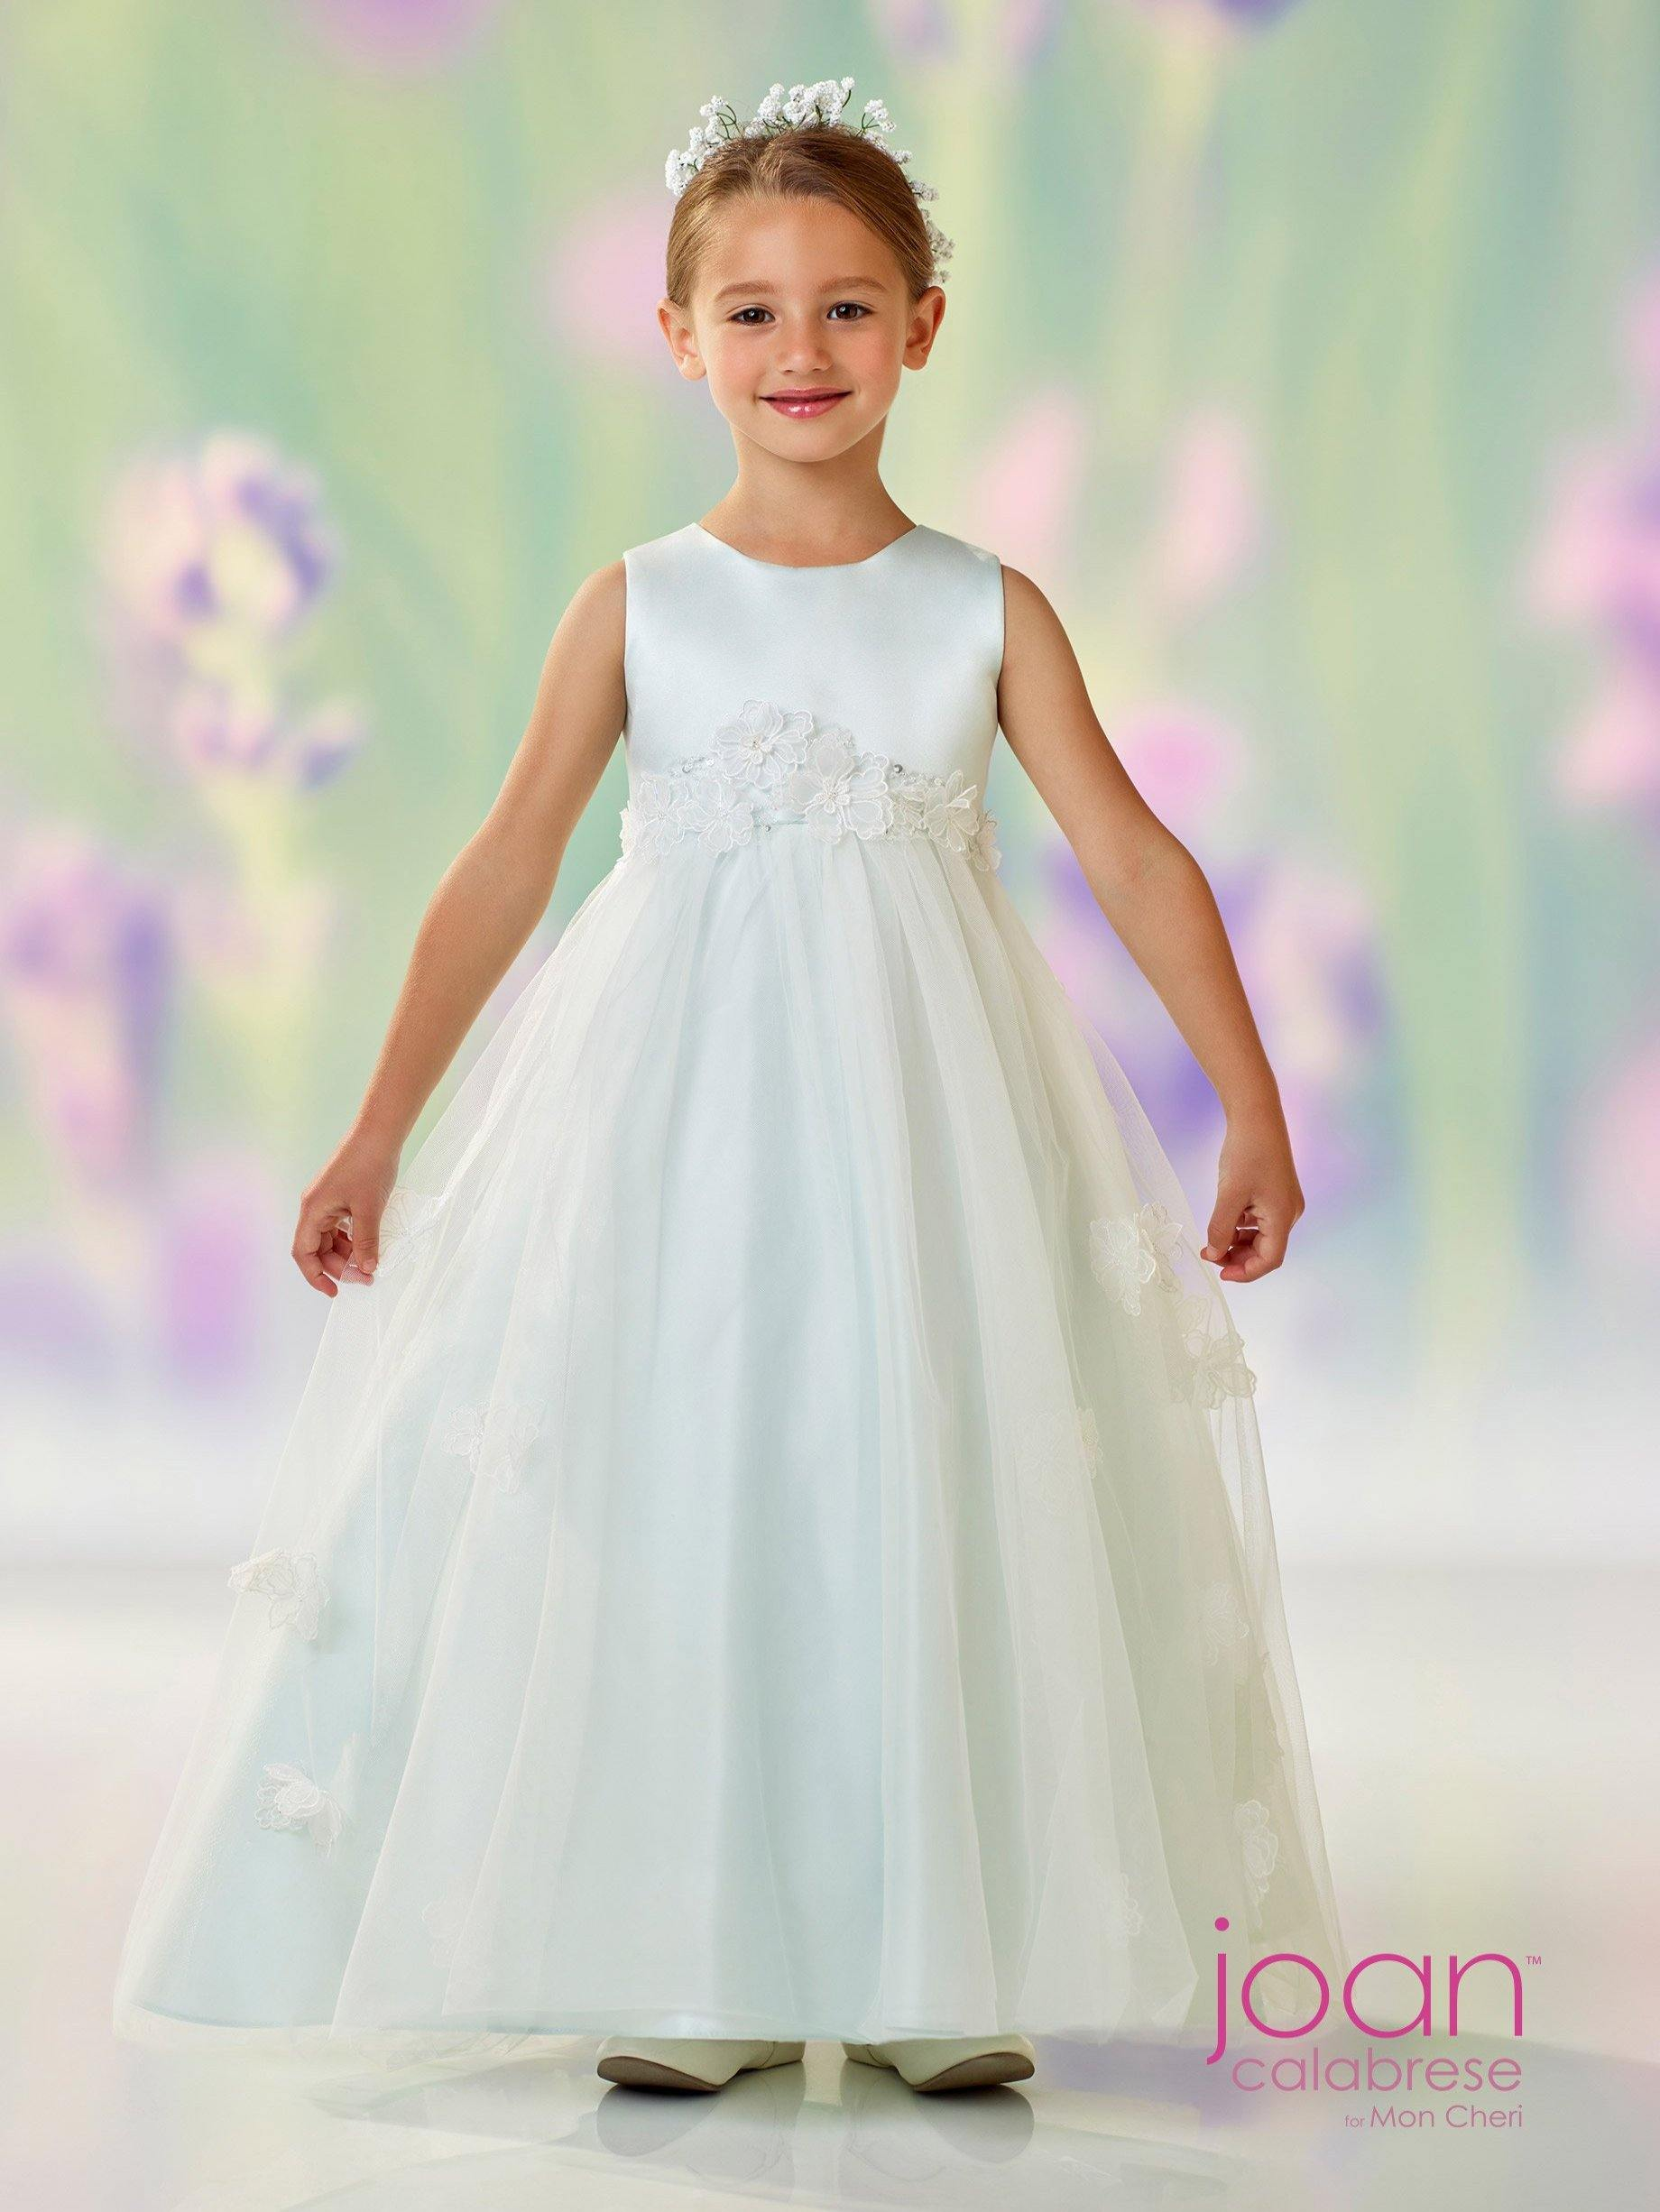 JC 118320 €375 - Elliott Chambers    - Bridal -  Debs Dresses -  Communion dresses